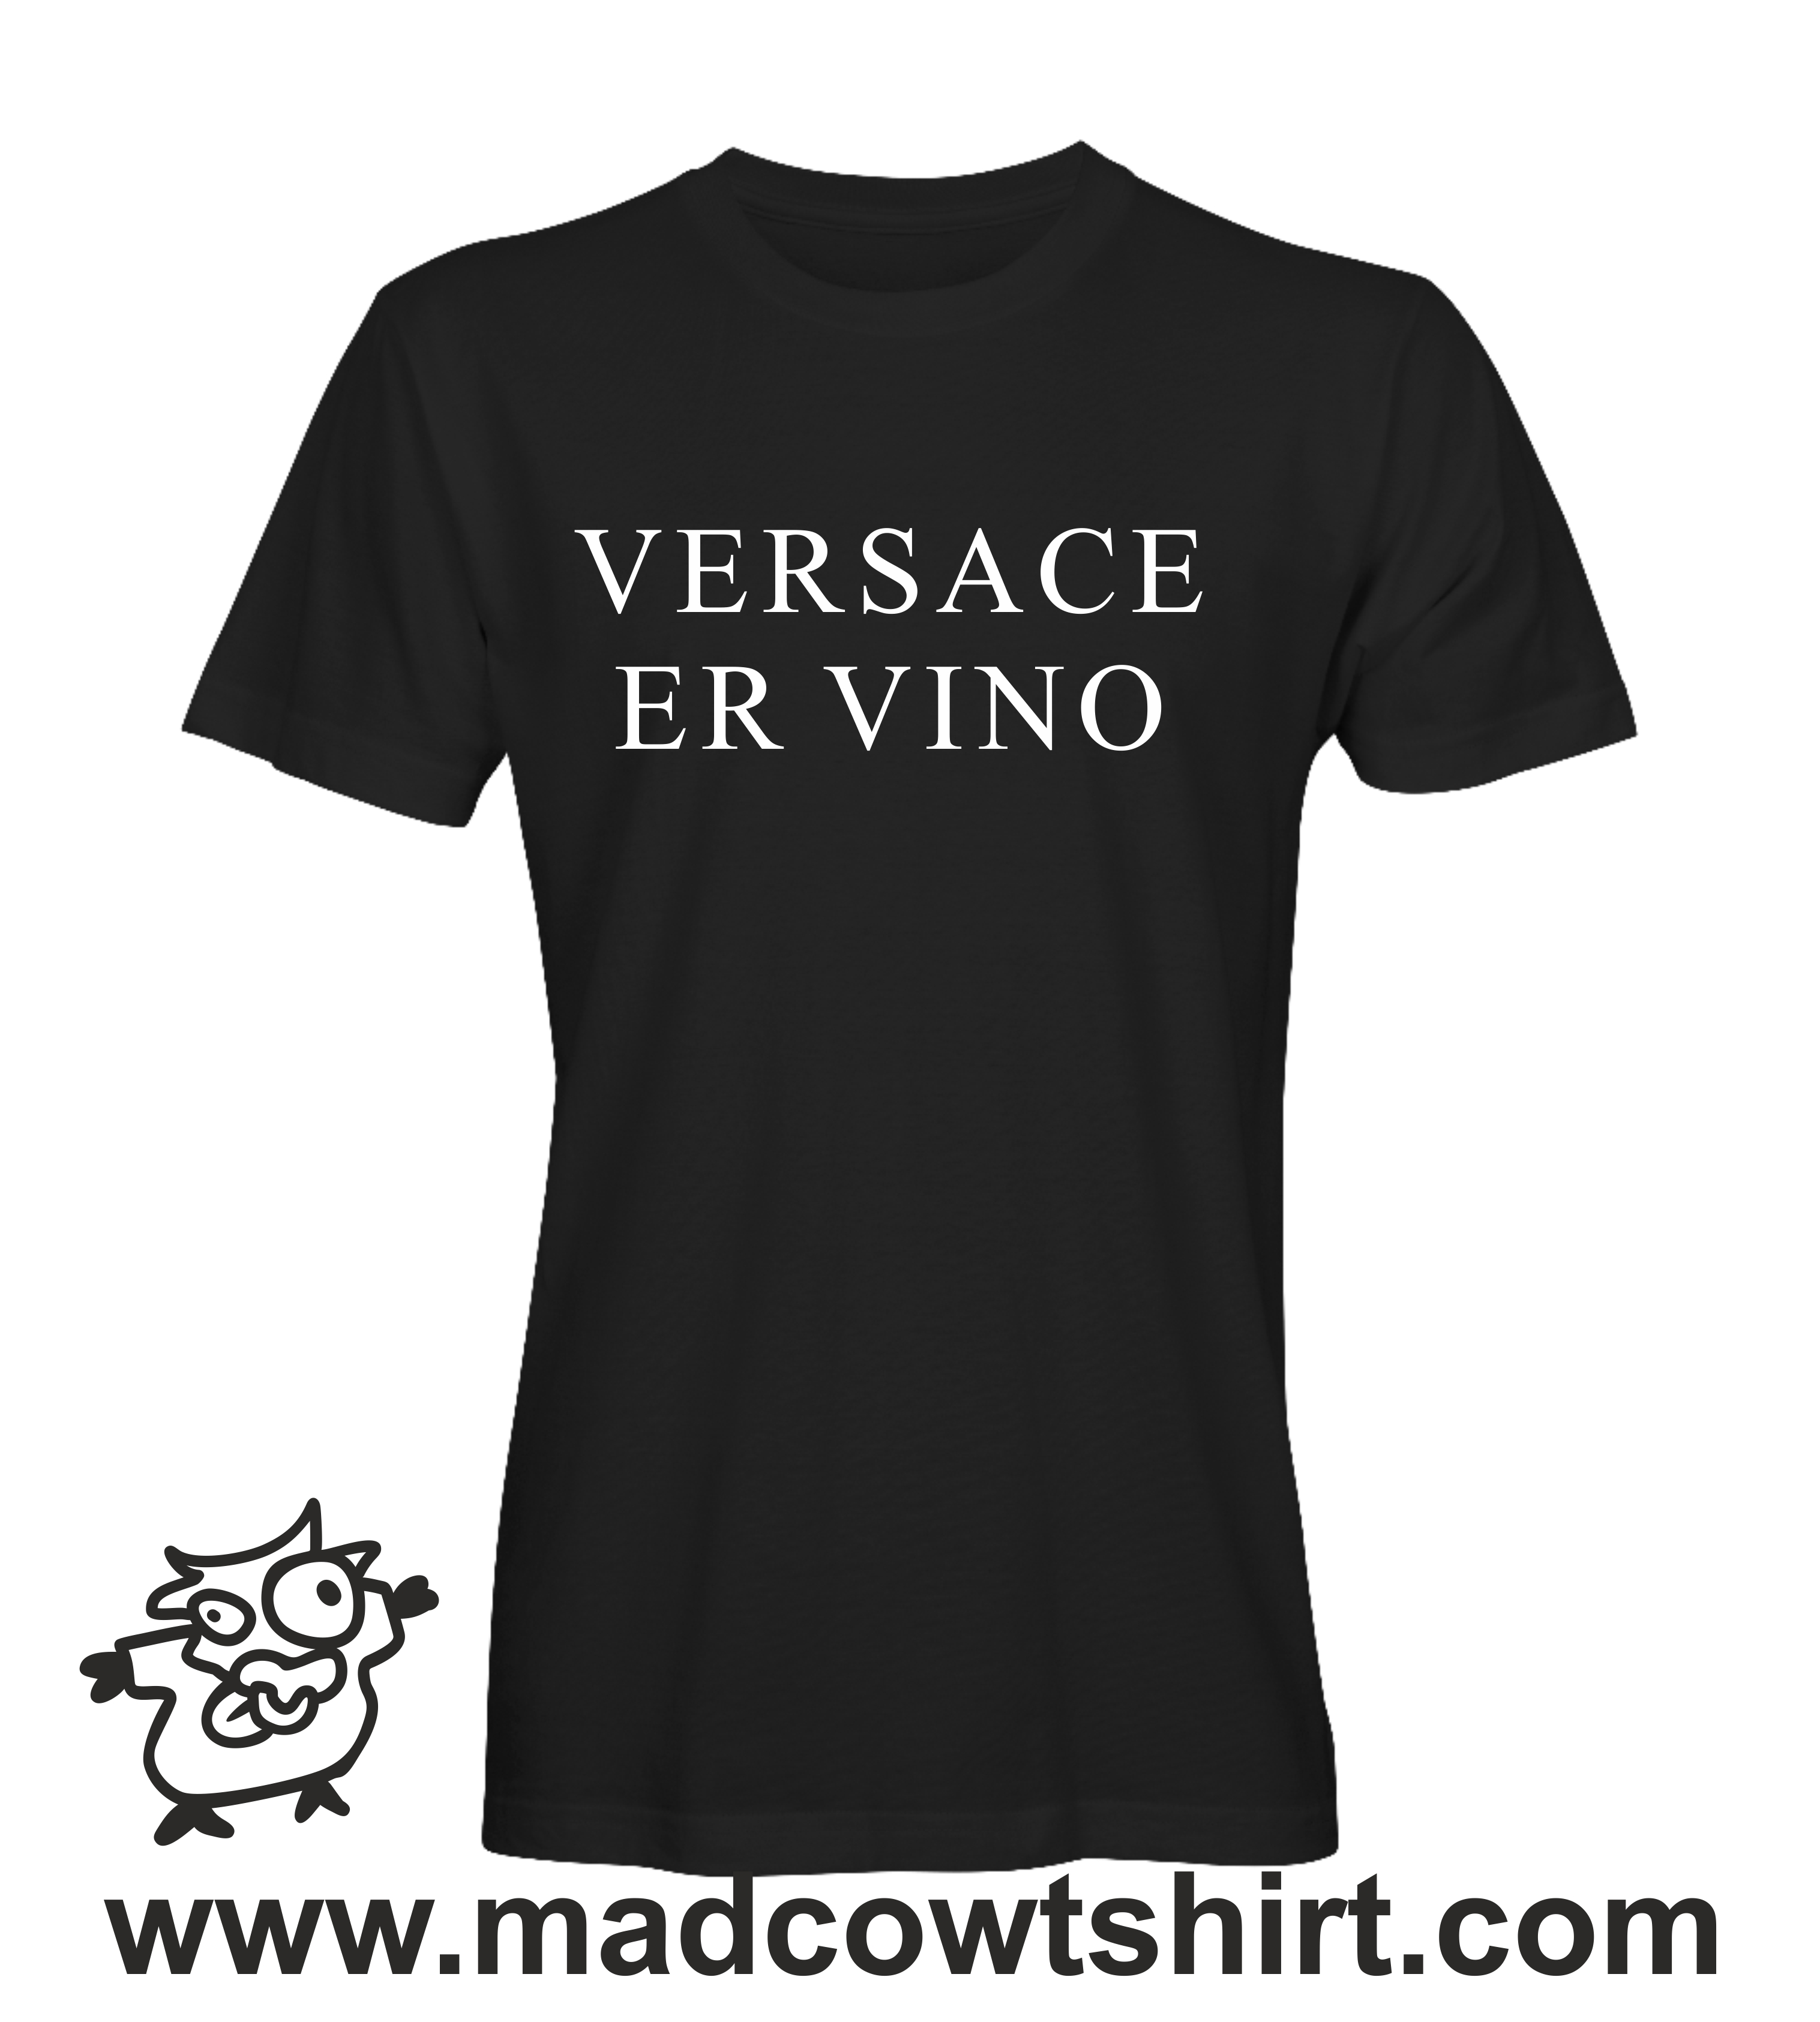 3e188b478752c 000211 versace er vino T-shirt Man Woman Child - Mad Cow T-shirt